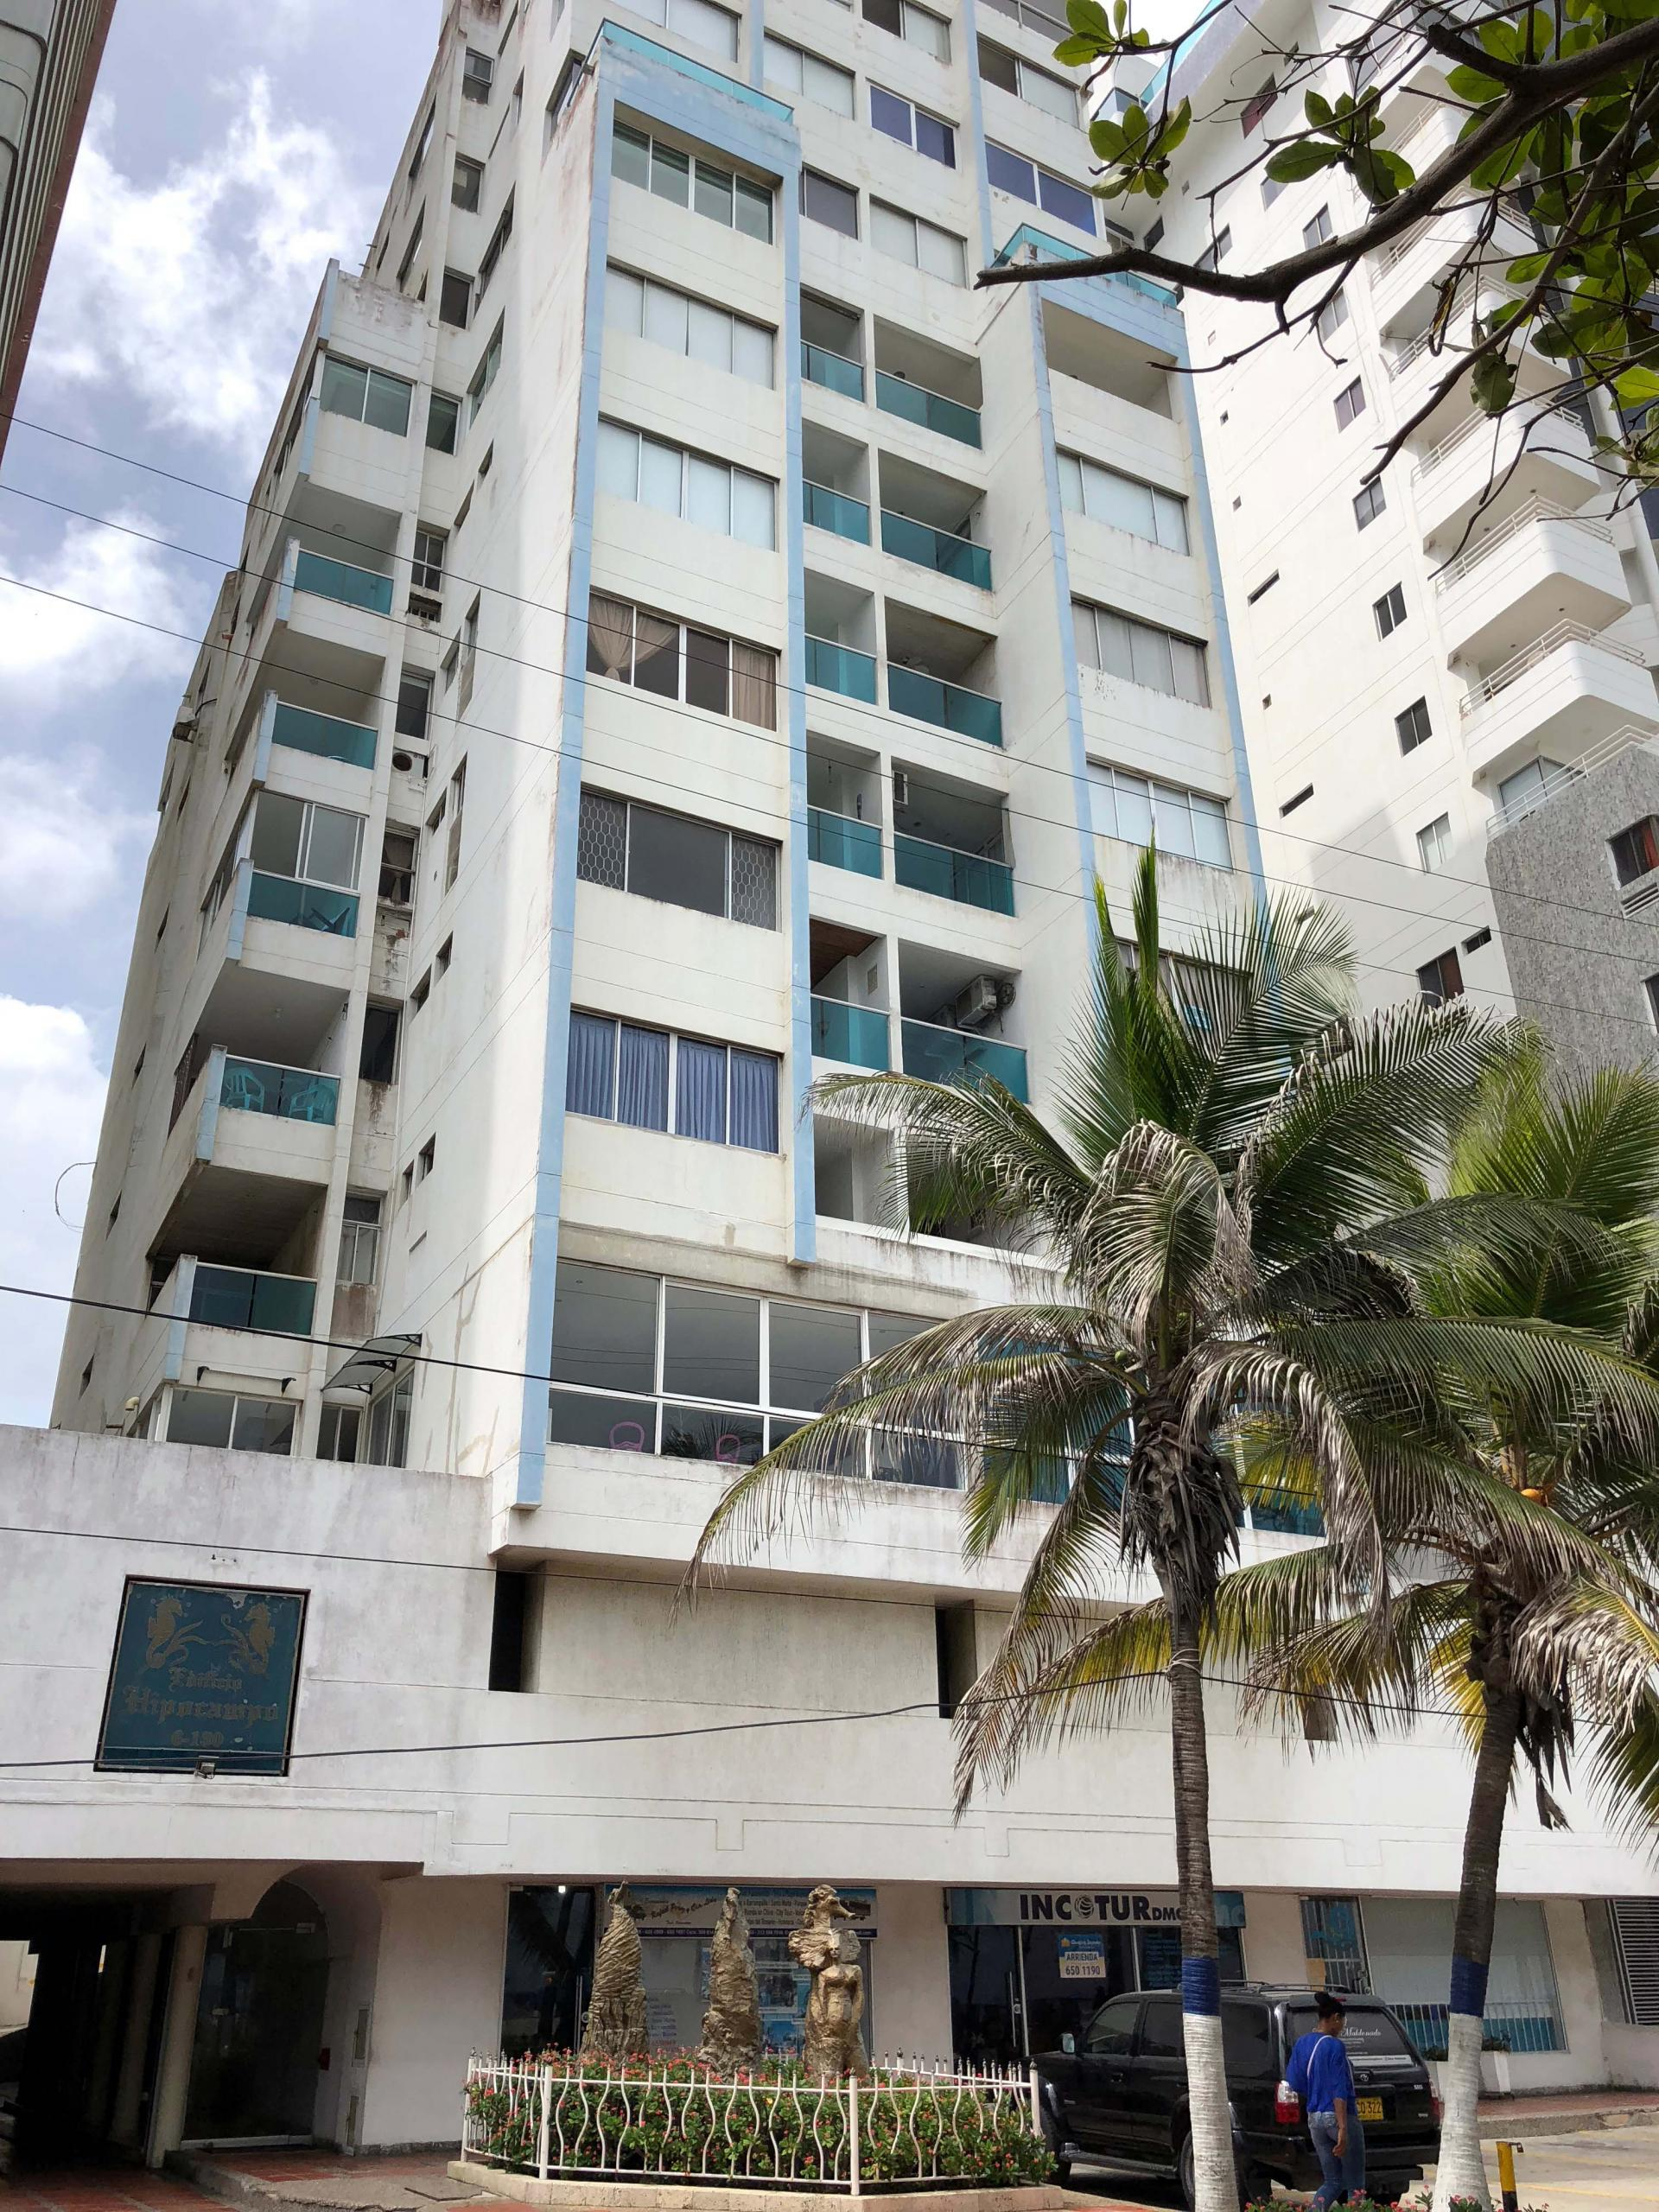 CARTAGENA - Bocagrande - Beach Front - Charming and affordable  2 bedroom apartment